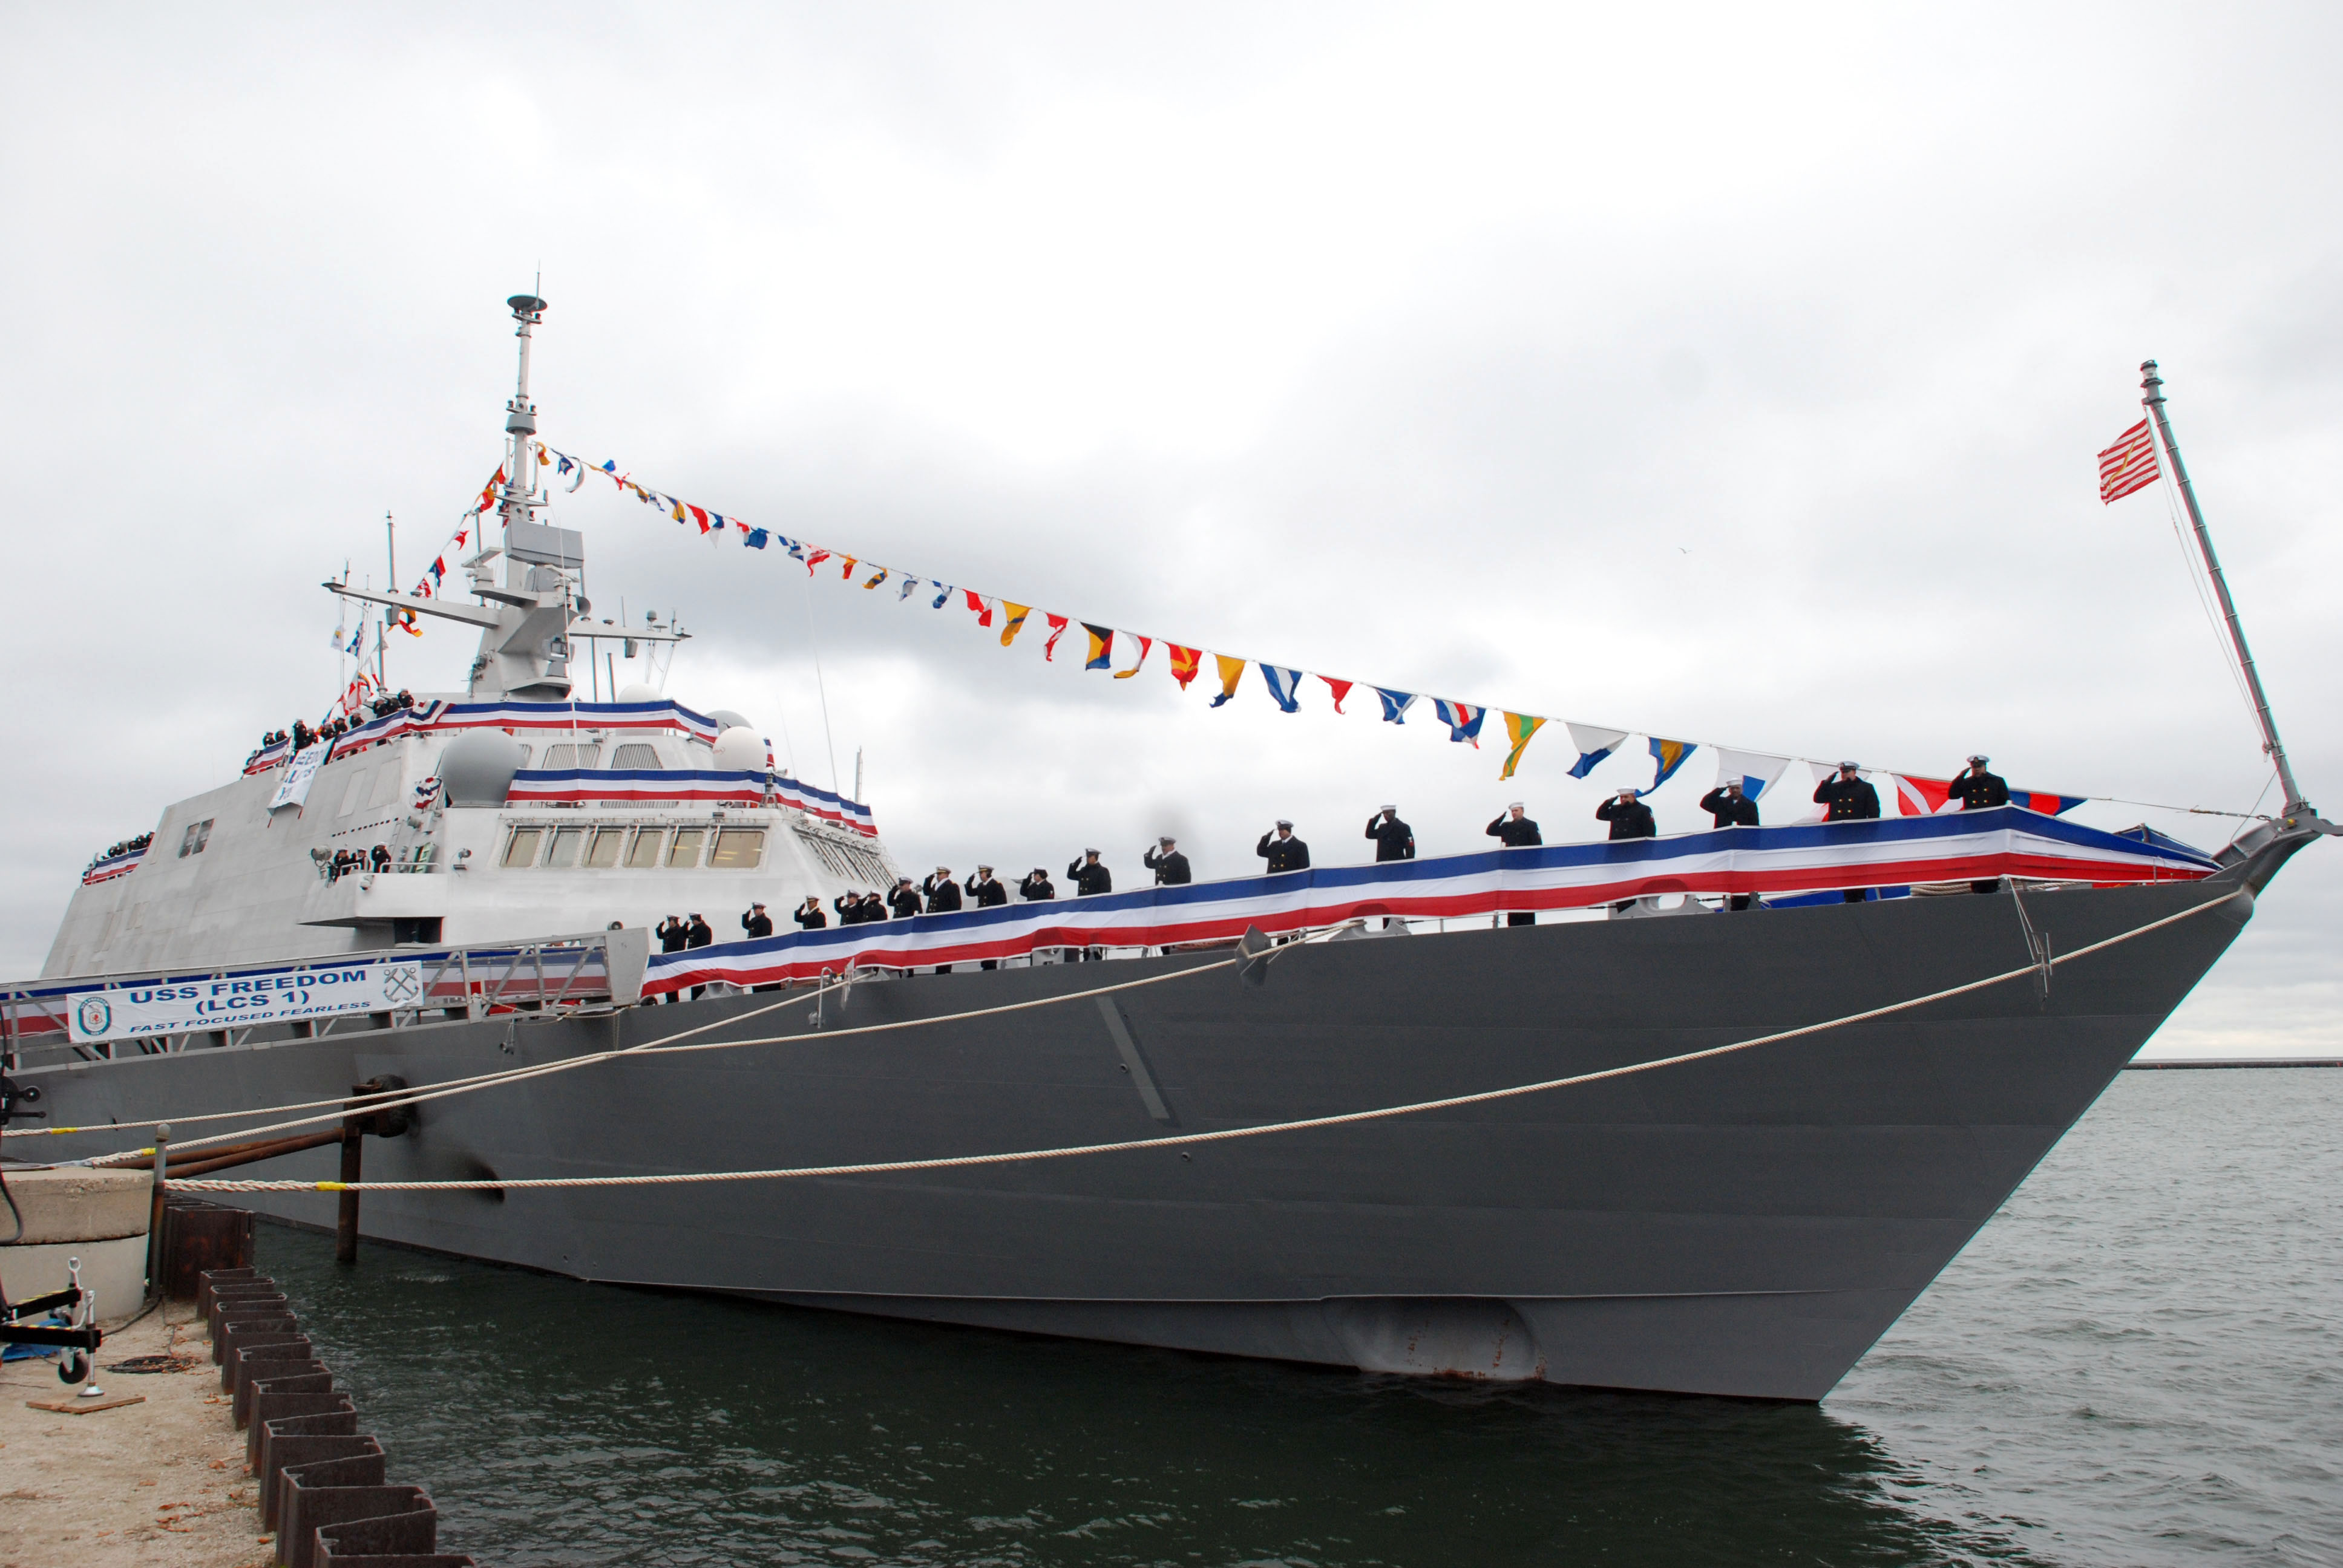 File uss freedom lcs 1 the crew mans the wikimedia commons - Uss freedom lcs 1 photos ...